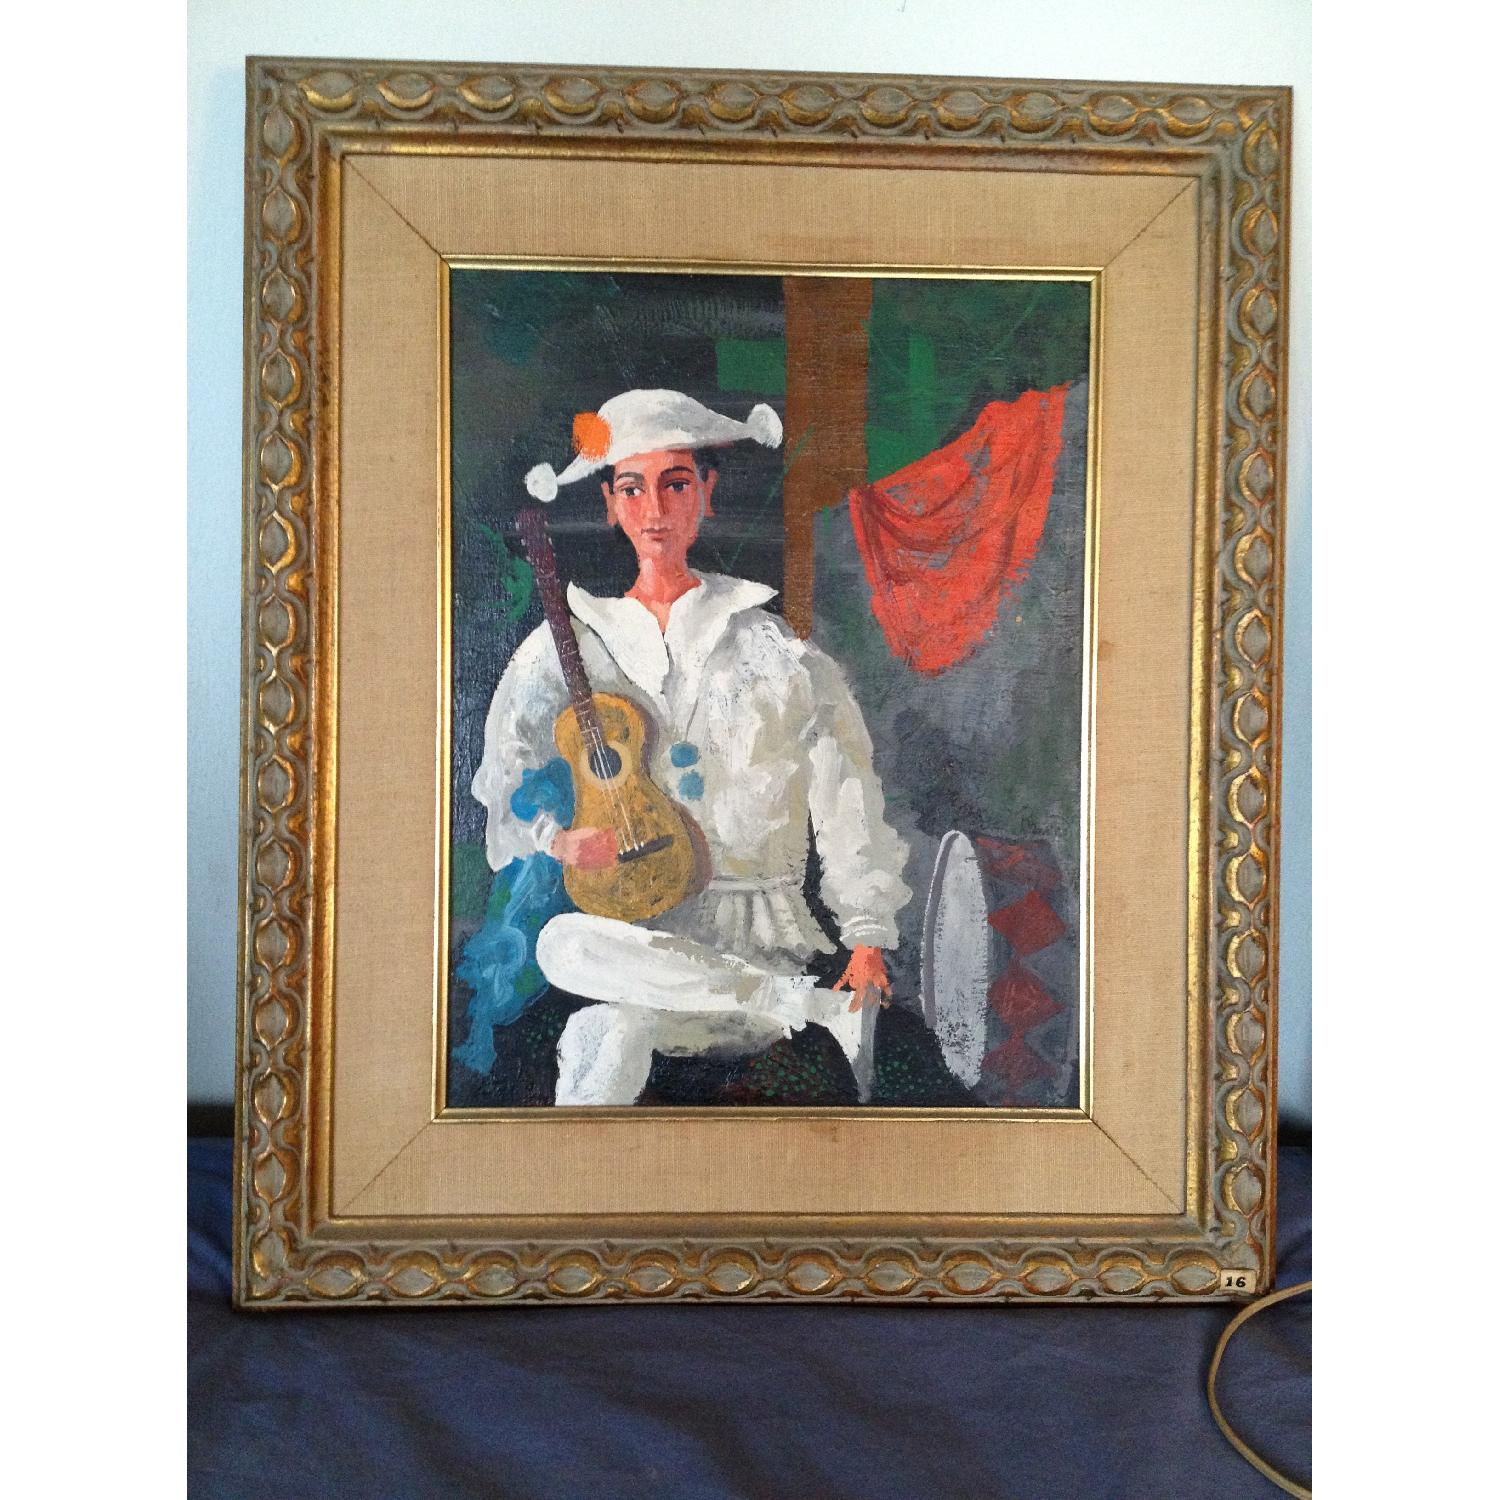 Byron Browne 1960 Oil Painting - The Clown - image-1